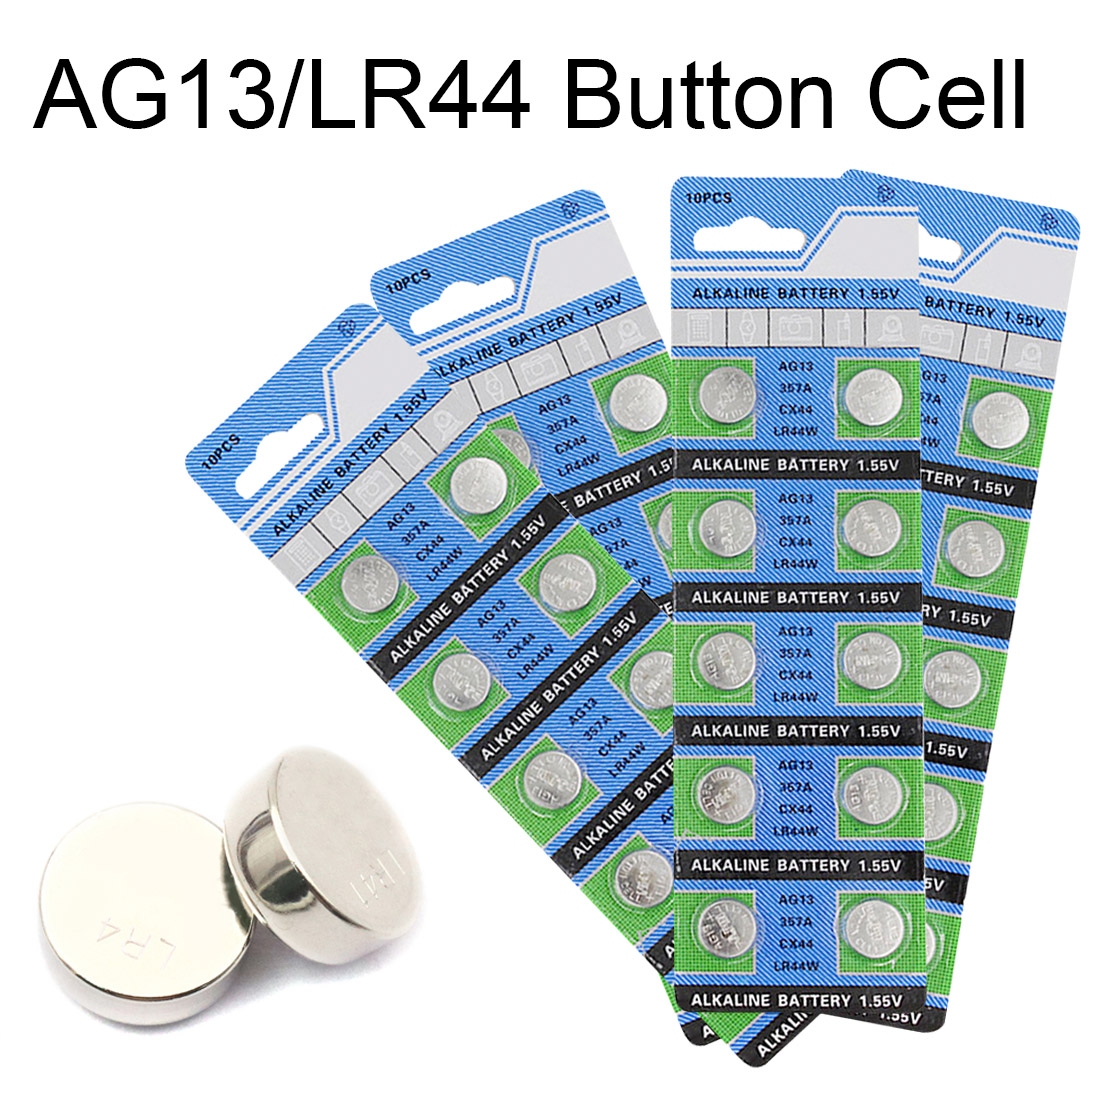 10PCS AG13 Watch Battery 357A CX44 LR44W Coin Cell Alkaline Batteries for Toy Calculator Laser Pointer Clock Watch Cameras 1.55V